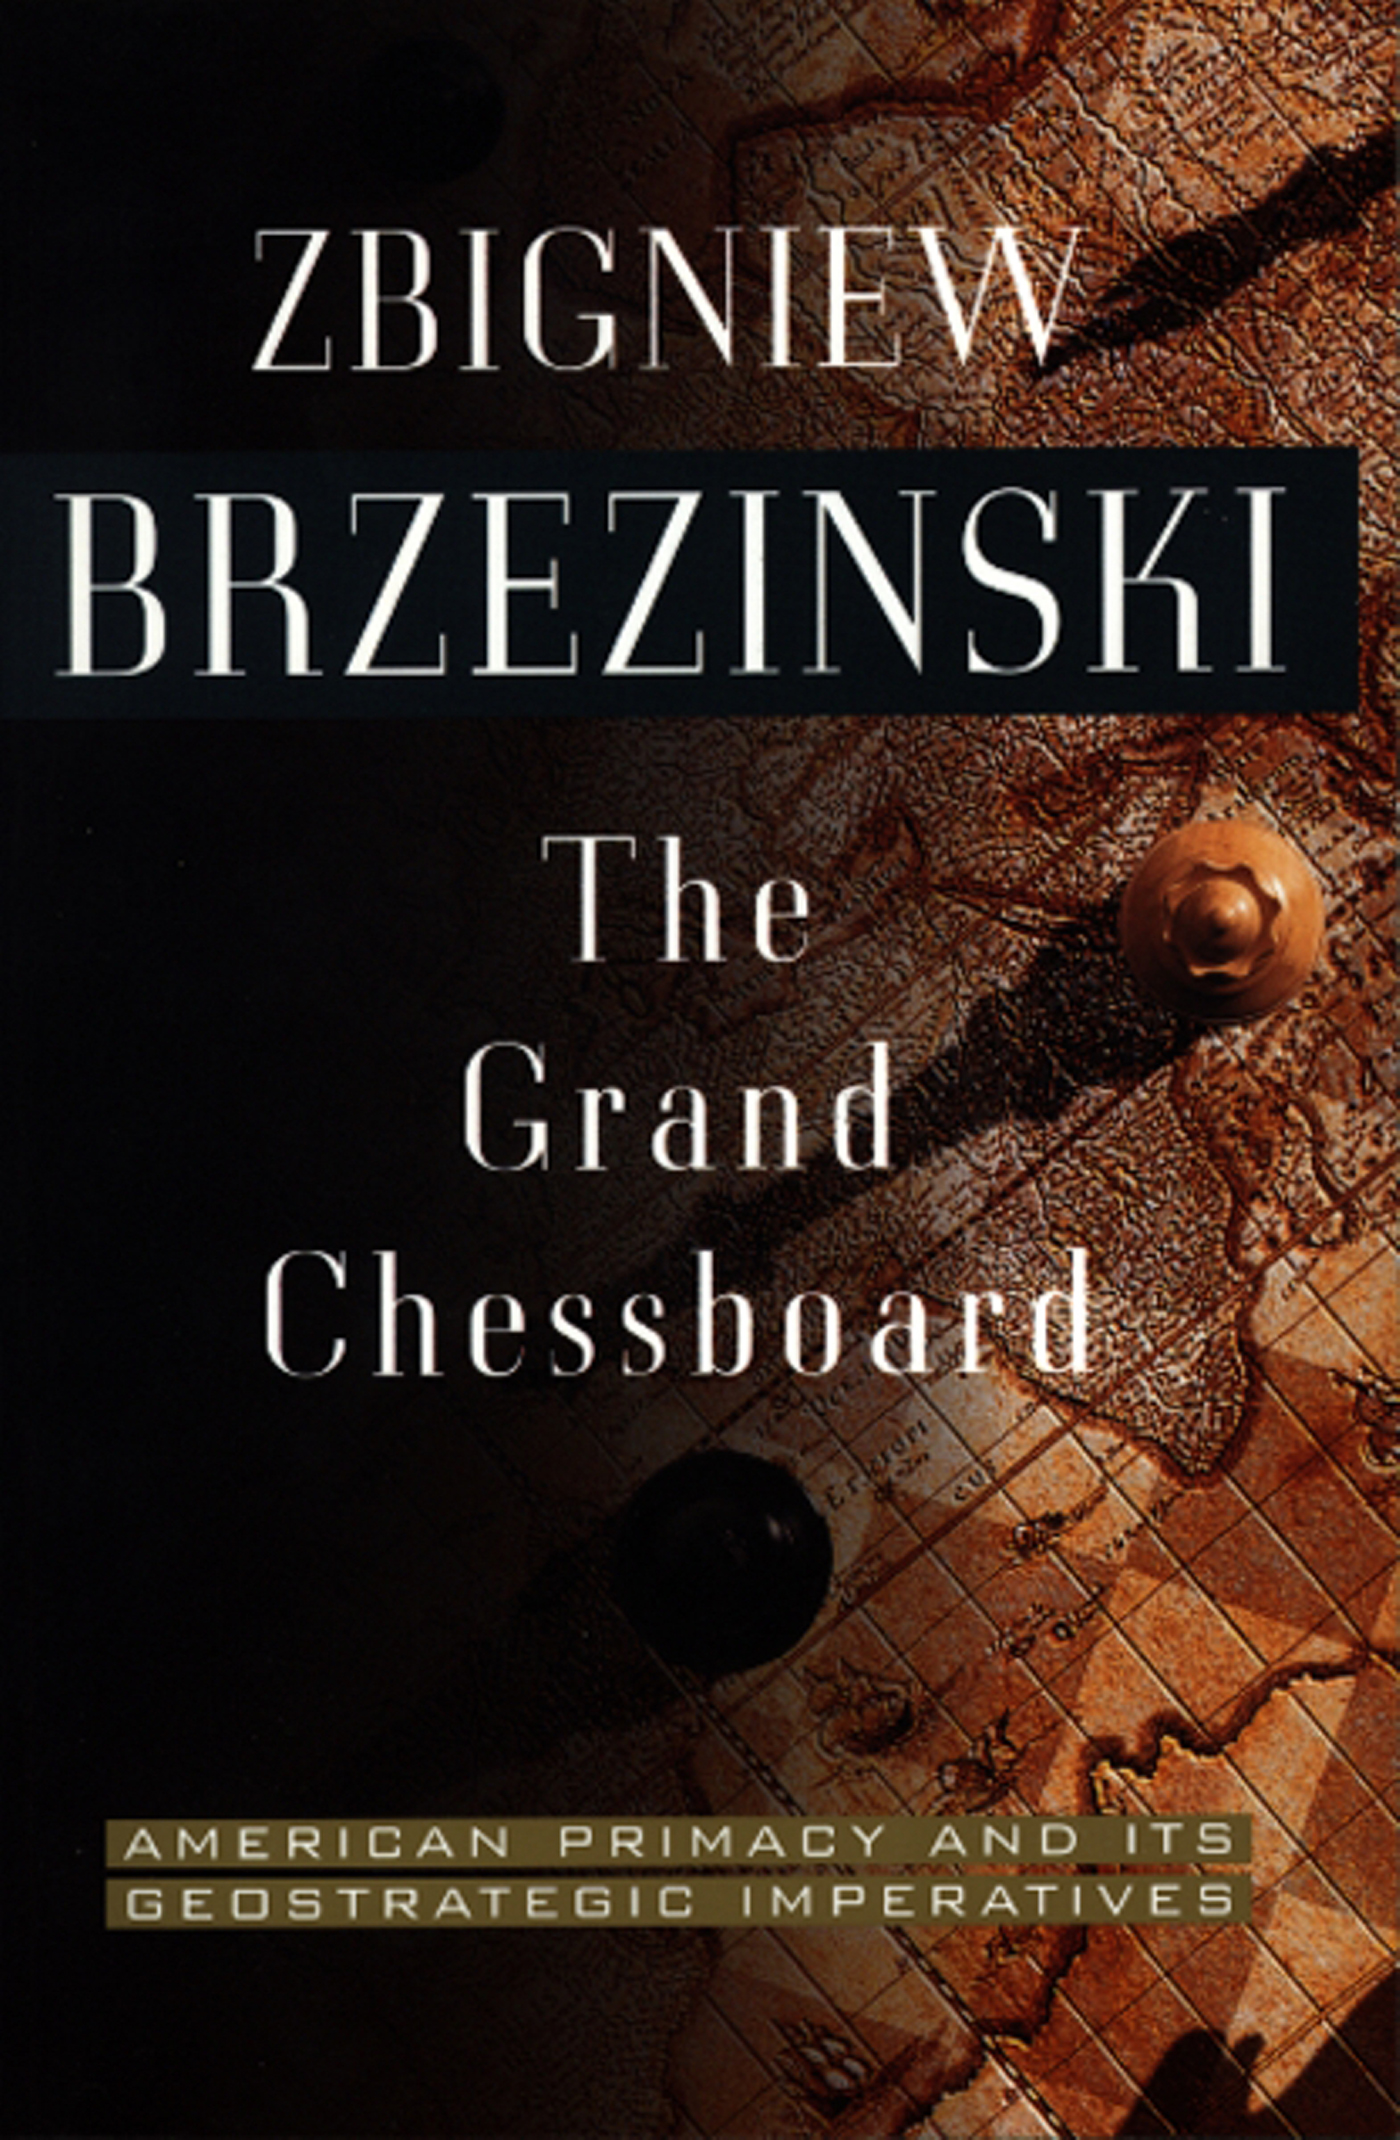 The Grand Chessboard By: Zbigniew Brzezinski